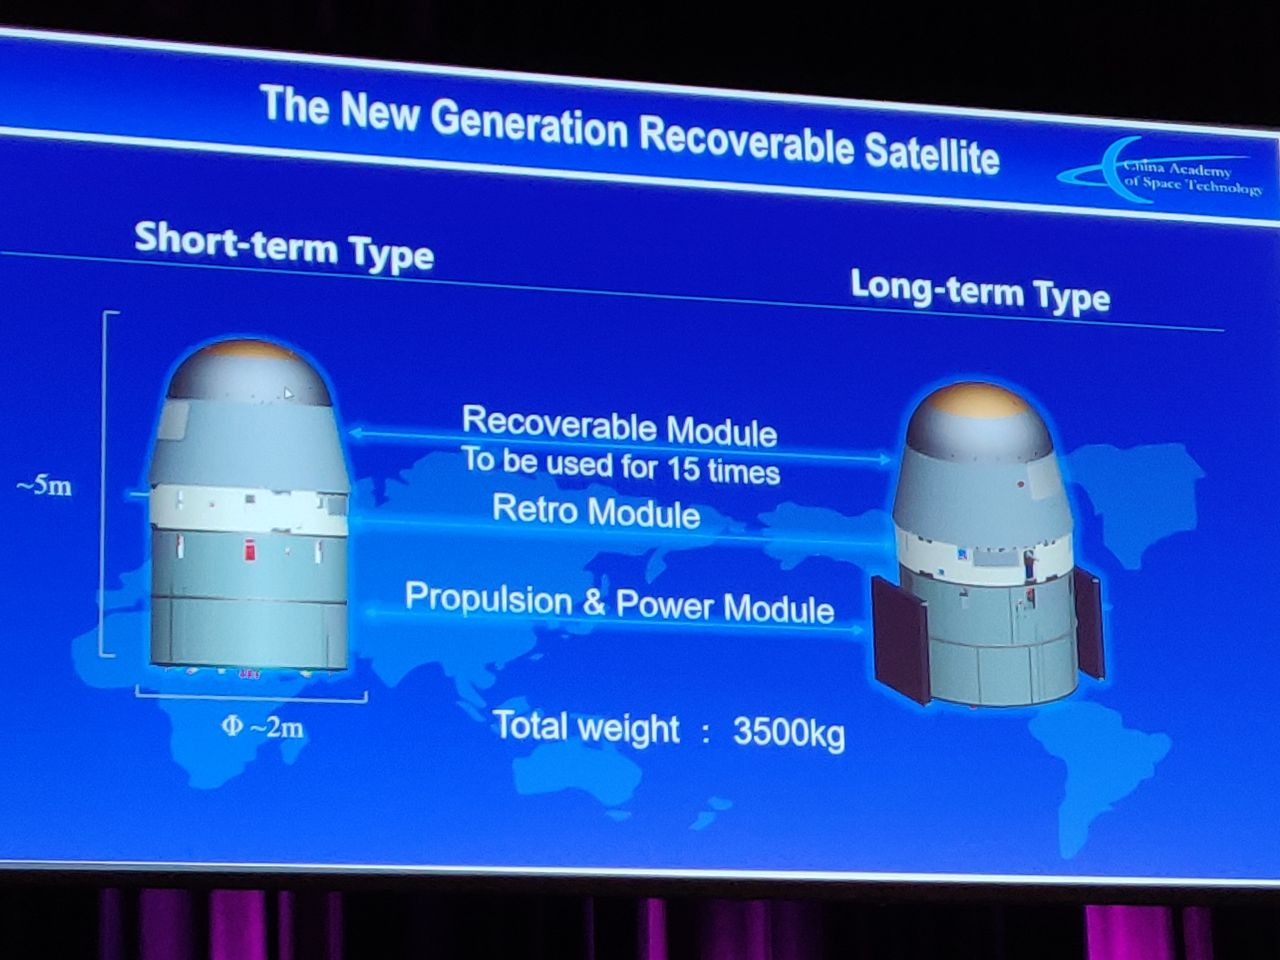 The CAST recoverable satellite will, excluding heat shielding, be reusable around 15 times.